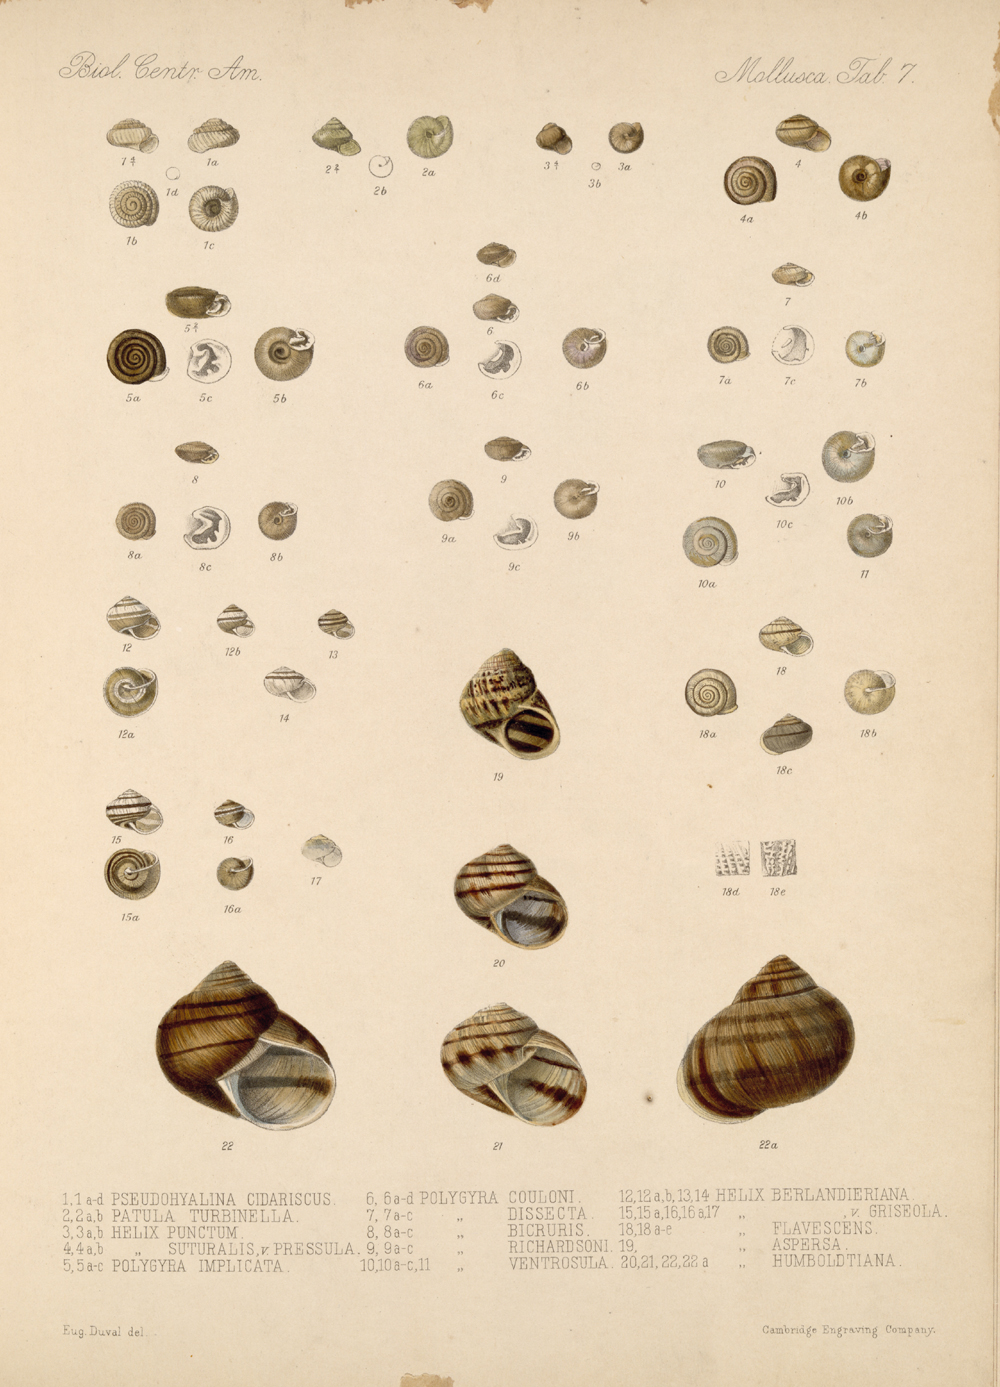 Shells and Mollusks,  Image number:bca_06_00_00_723